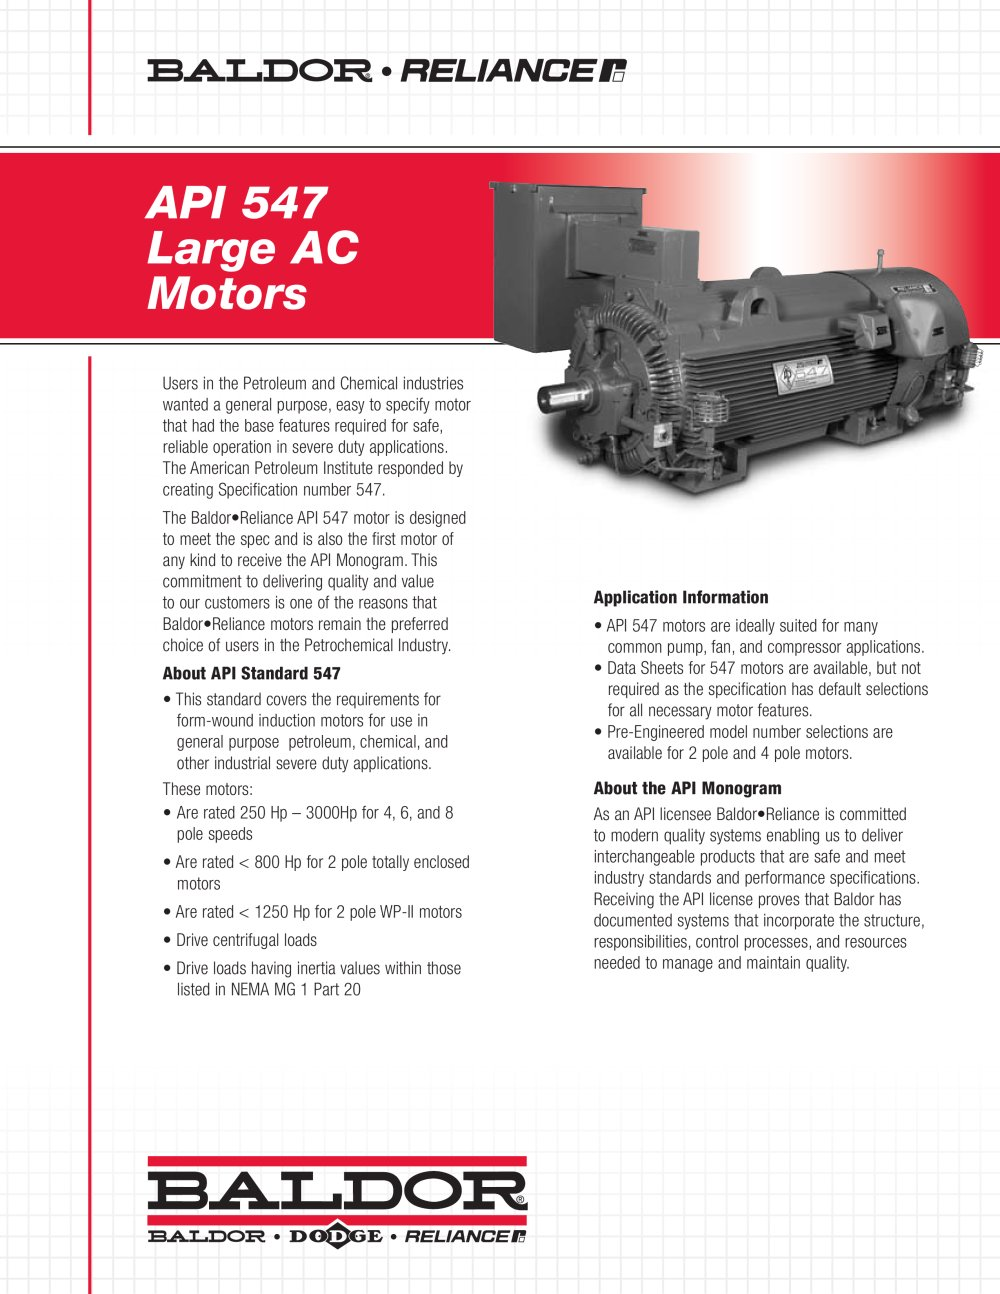 API 541 Large AC Motors - Baldor Electric Company